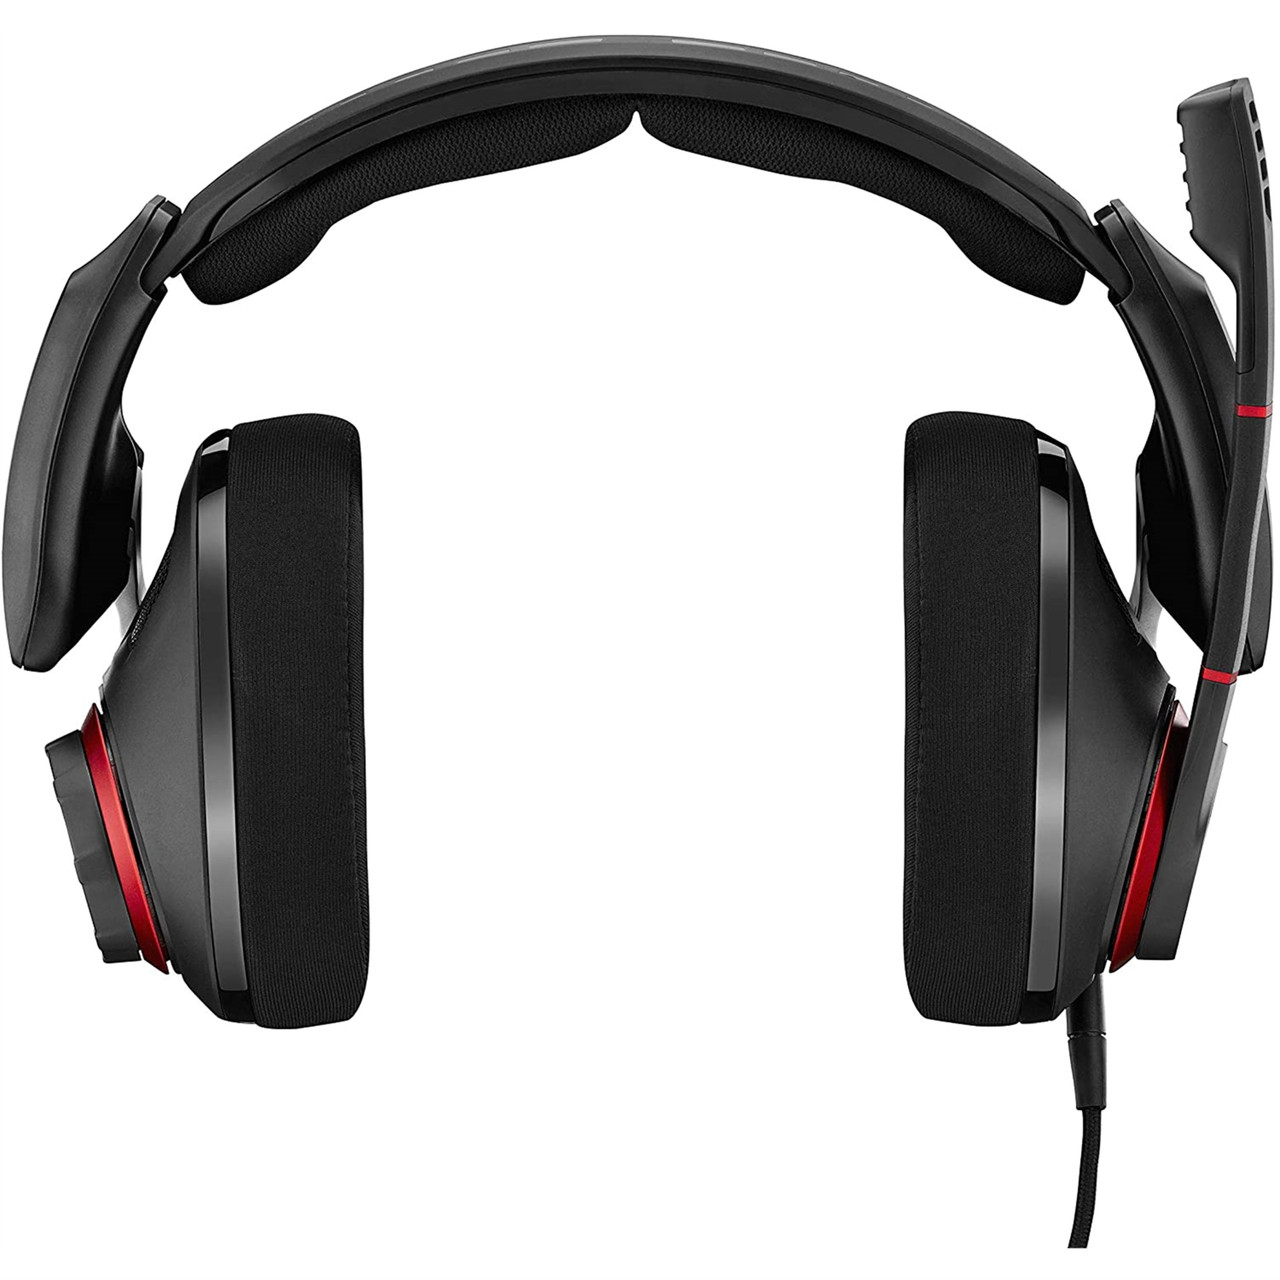 EPOS I SENNHEISER GSP 500 Wired Open Acoustic Gaming Headset